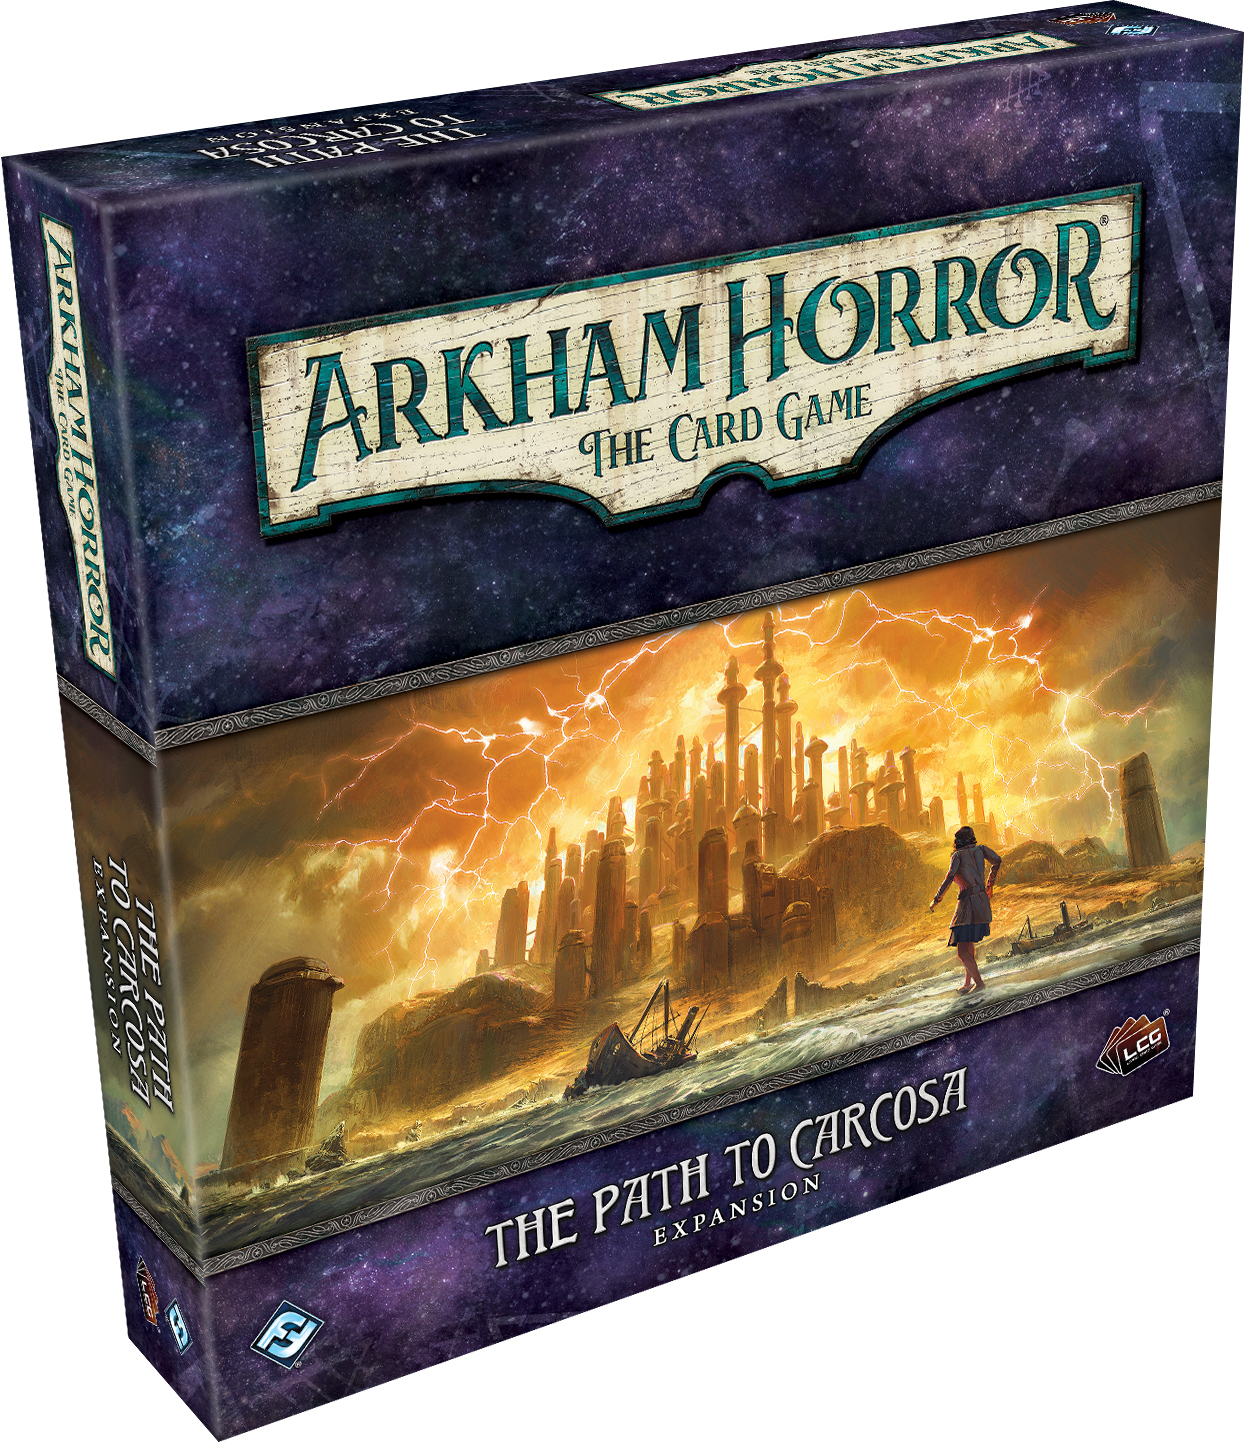 Arkham Horror Lcg: The Path To Carcosa Expansion Box Front